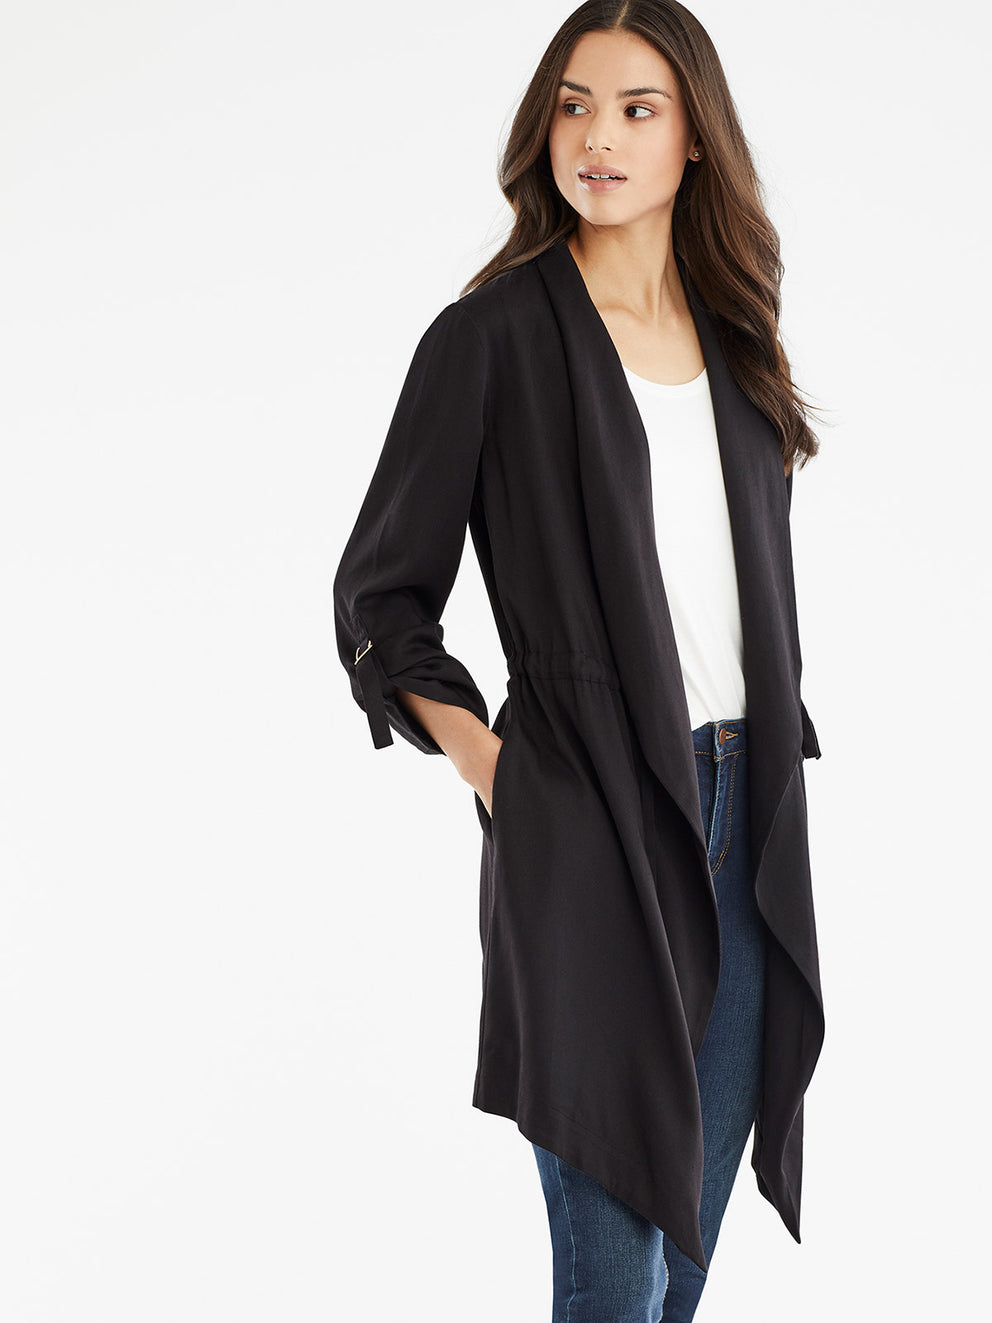 The Jones New York Draped Open Front Jacket in color Black - Image Position 2